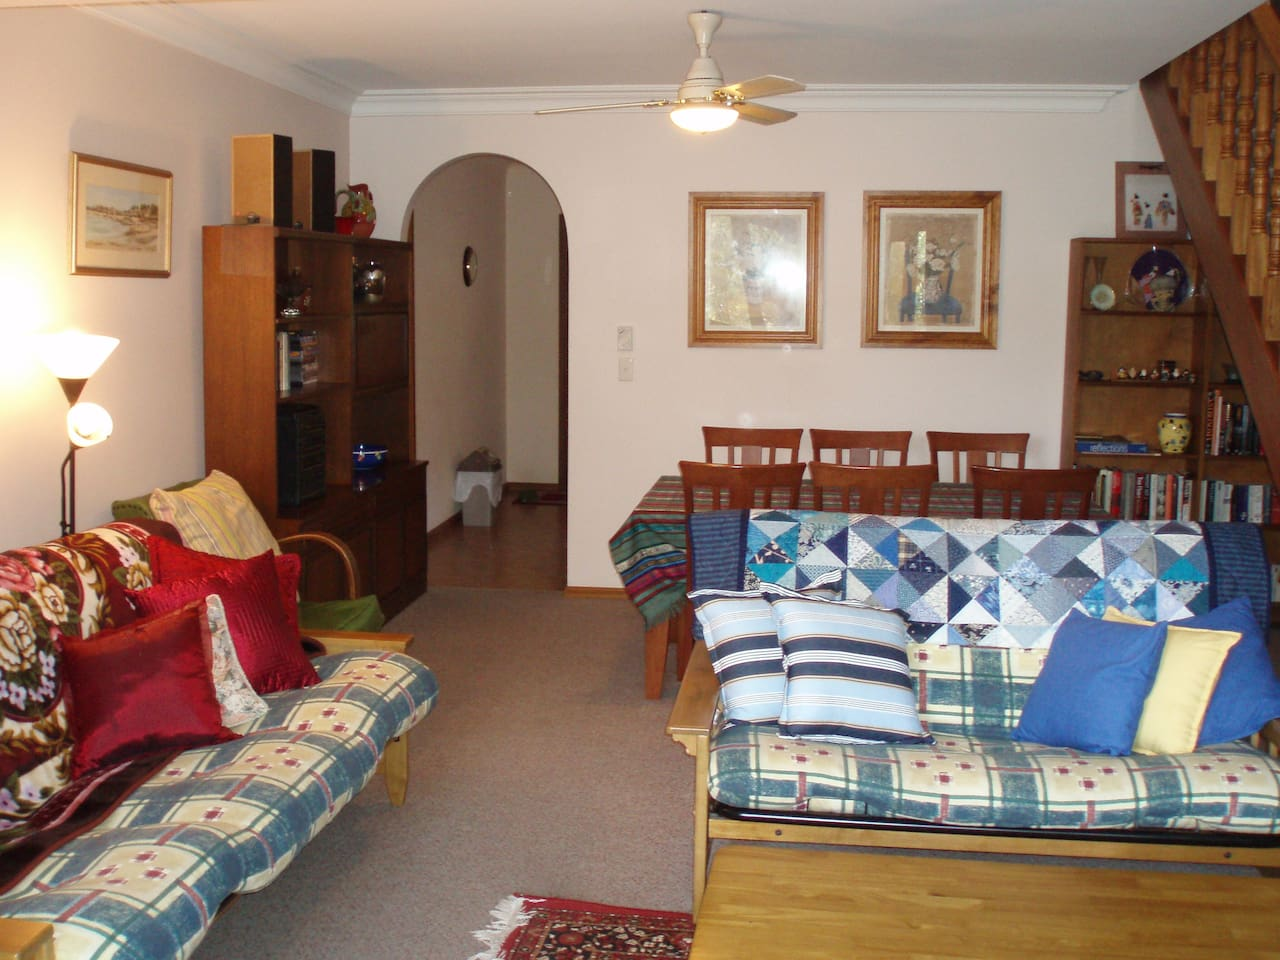 Spacious lounge and dining room with additional sleeping accommodation